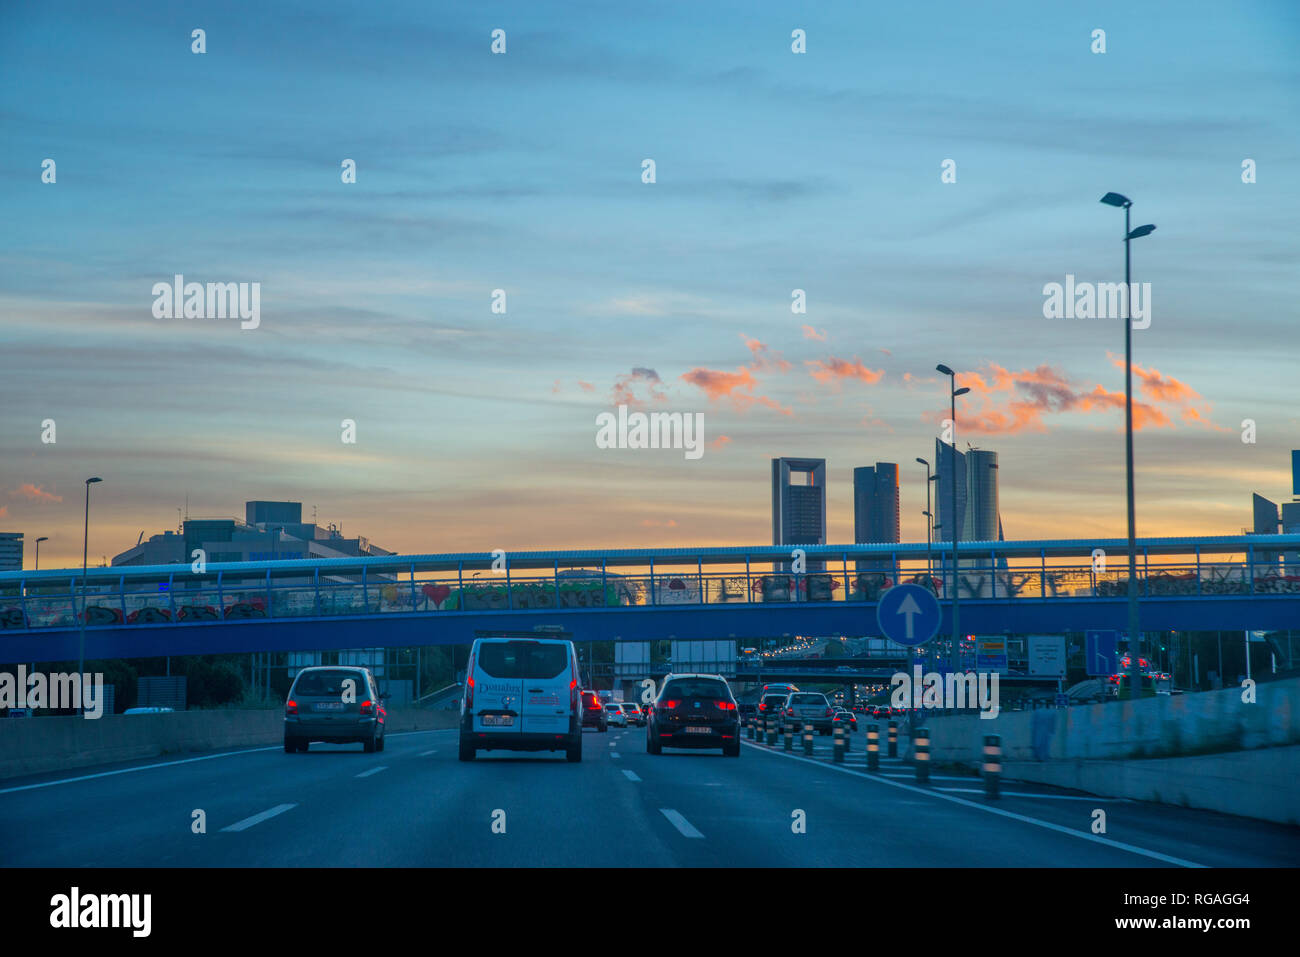 A-1 motorway and Cuatro Torres at dusk. Madrid, Spain. Stock Photo